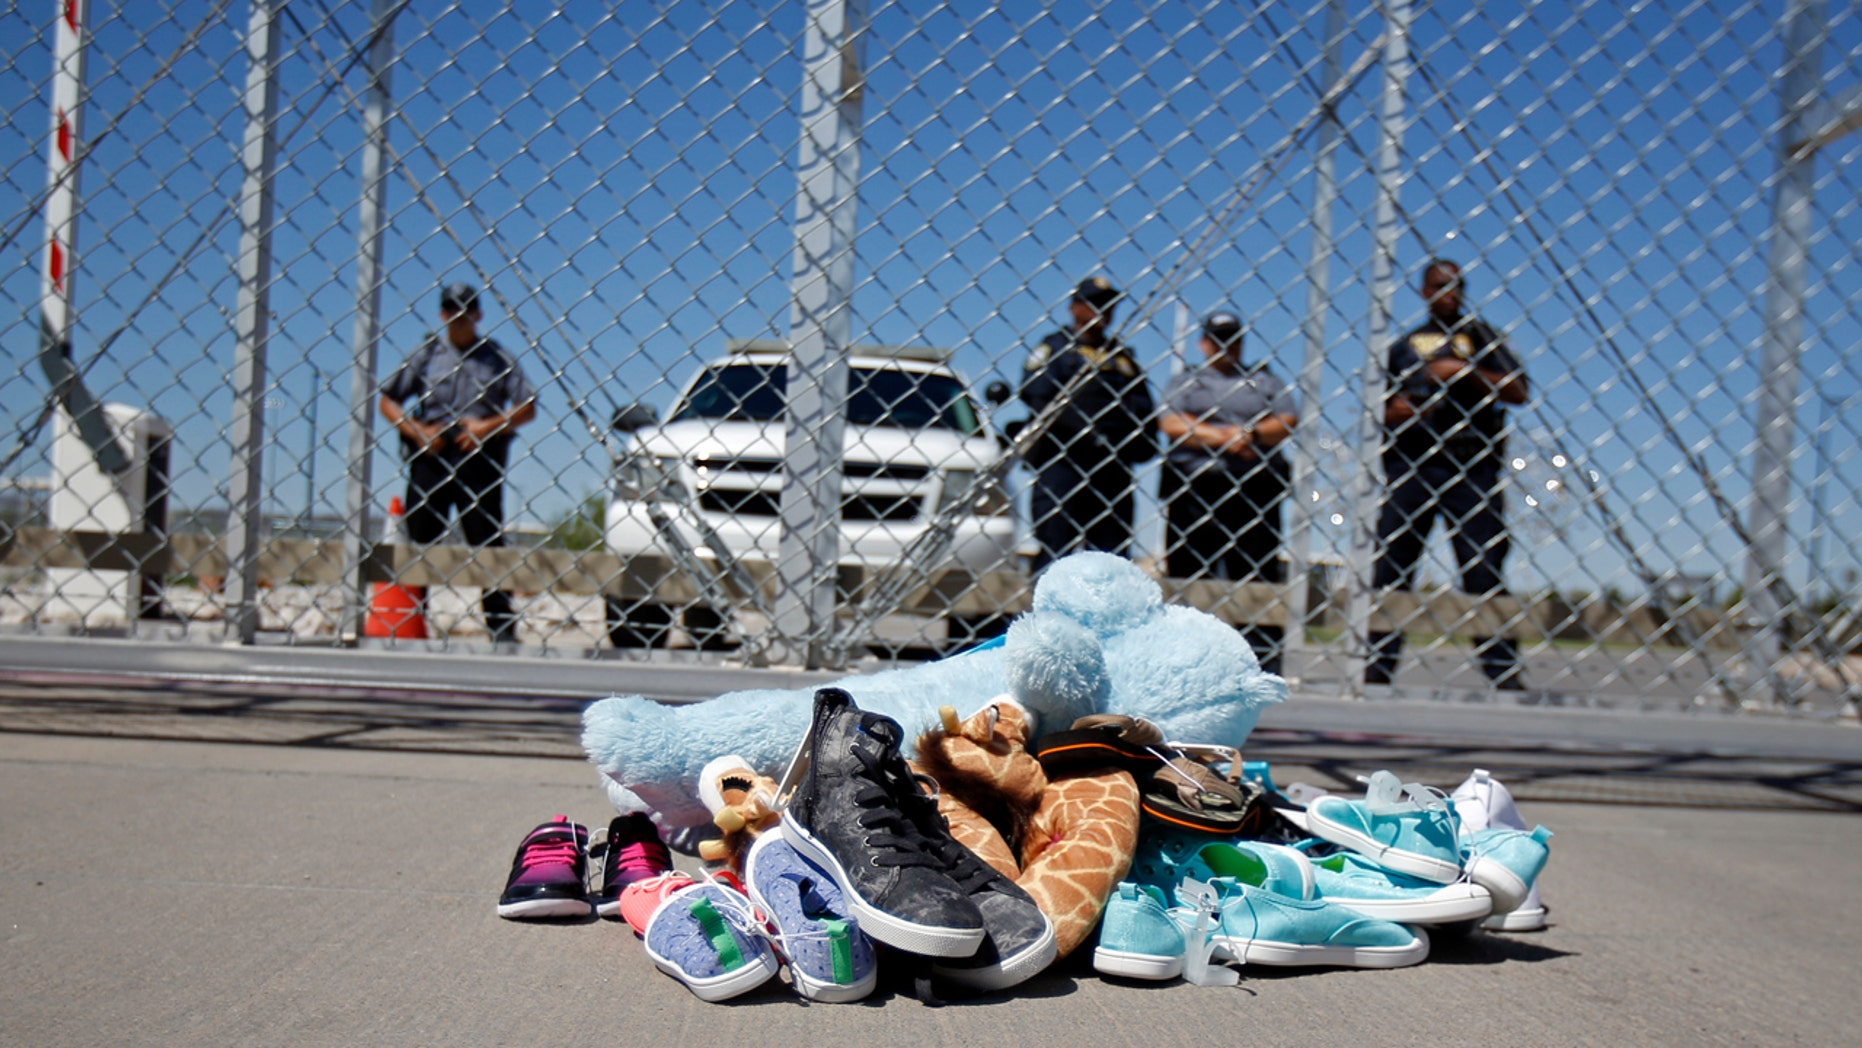 Shoes and a teddy bear, brought by a group of U.S. mayors, are piled up outside a holding facility for immigrant children in Tornillo, Texas, near the Mexican border, Thursday, June 21, 2018.